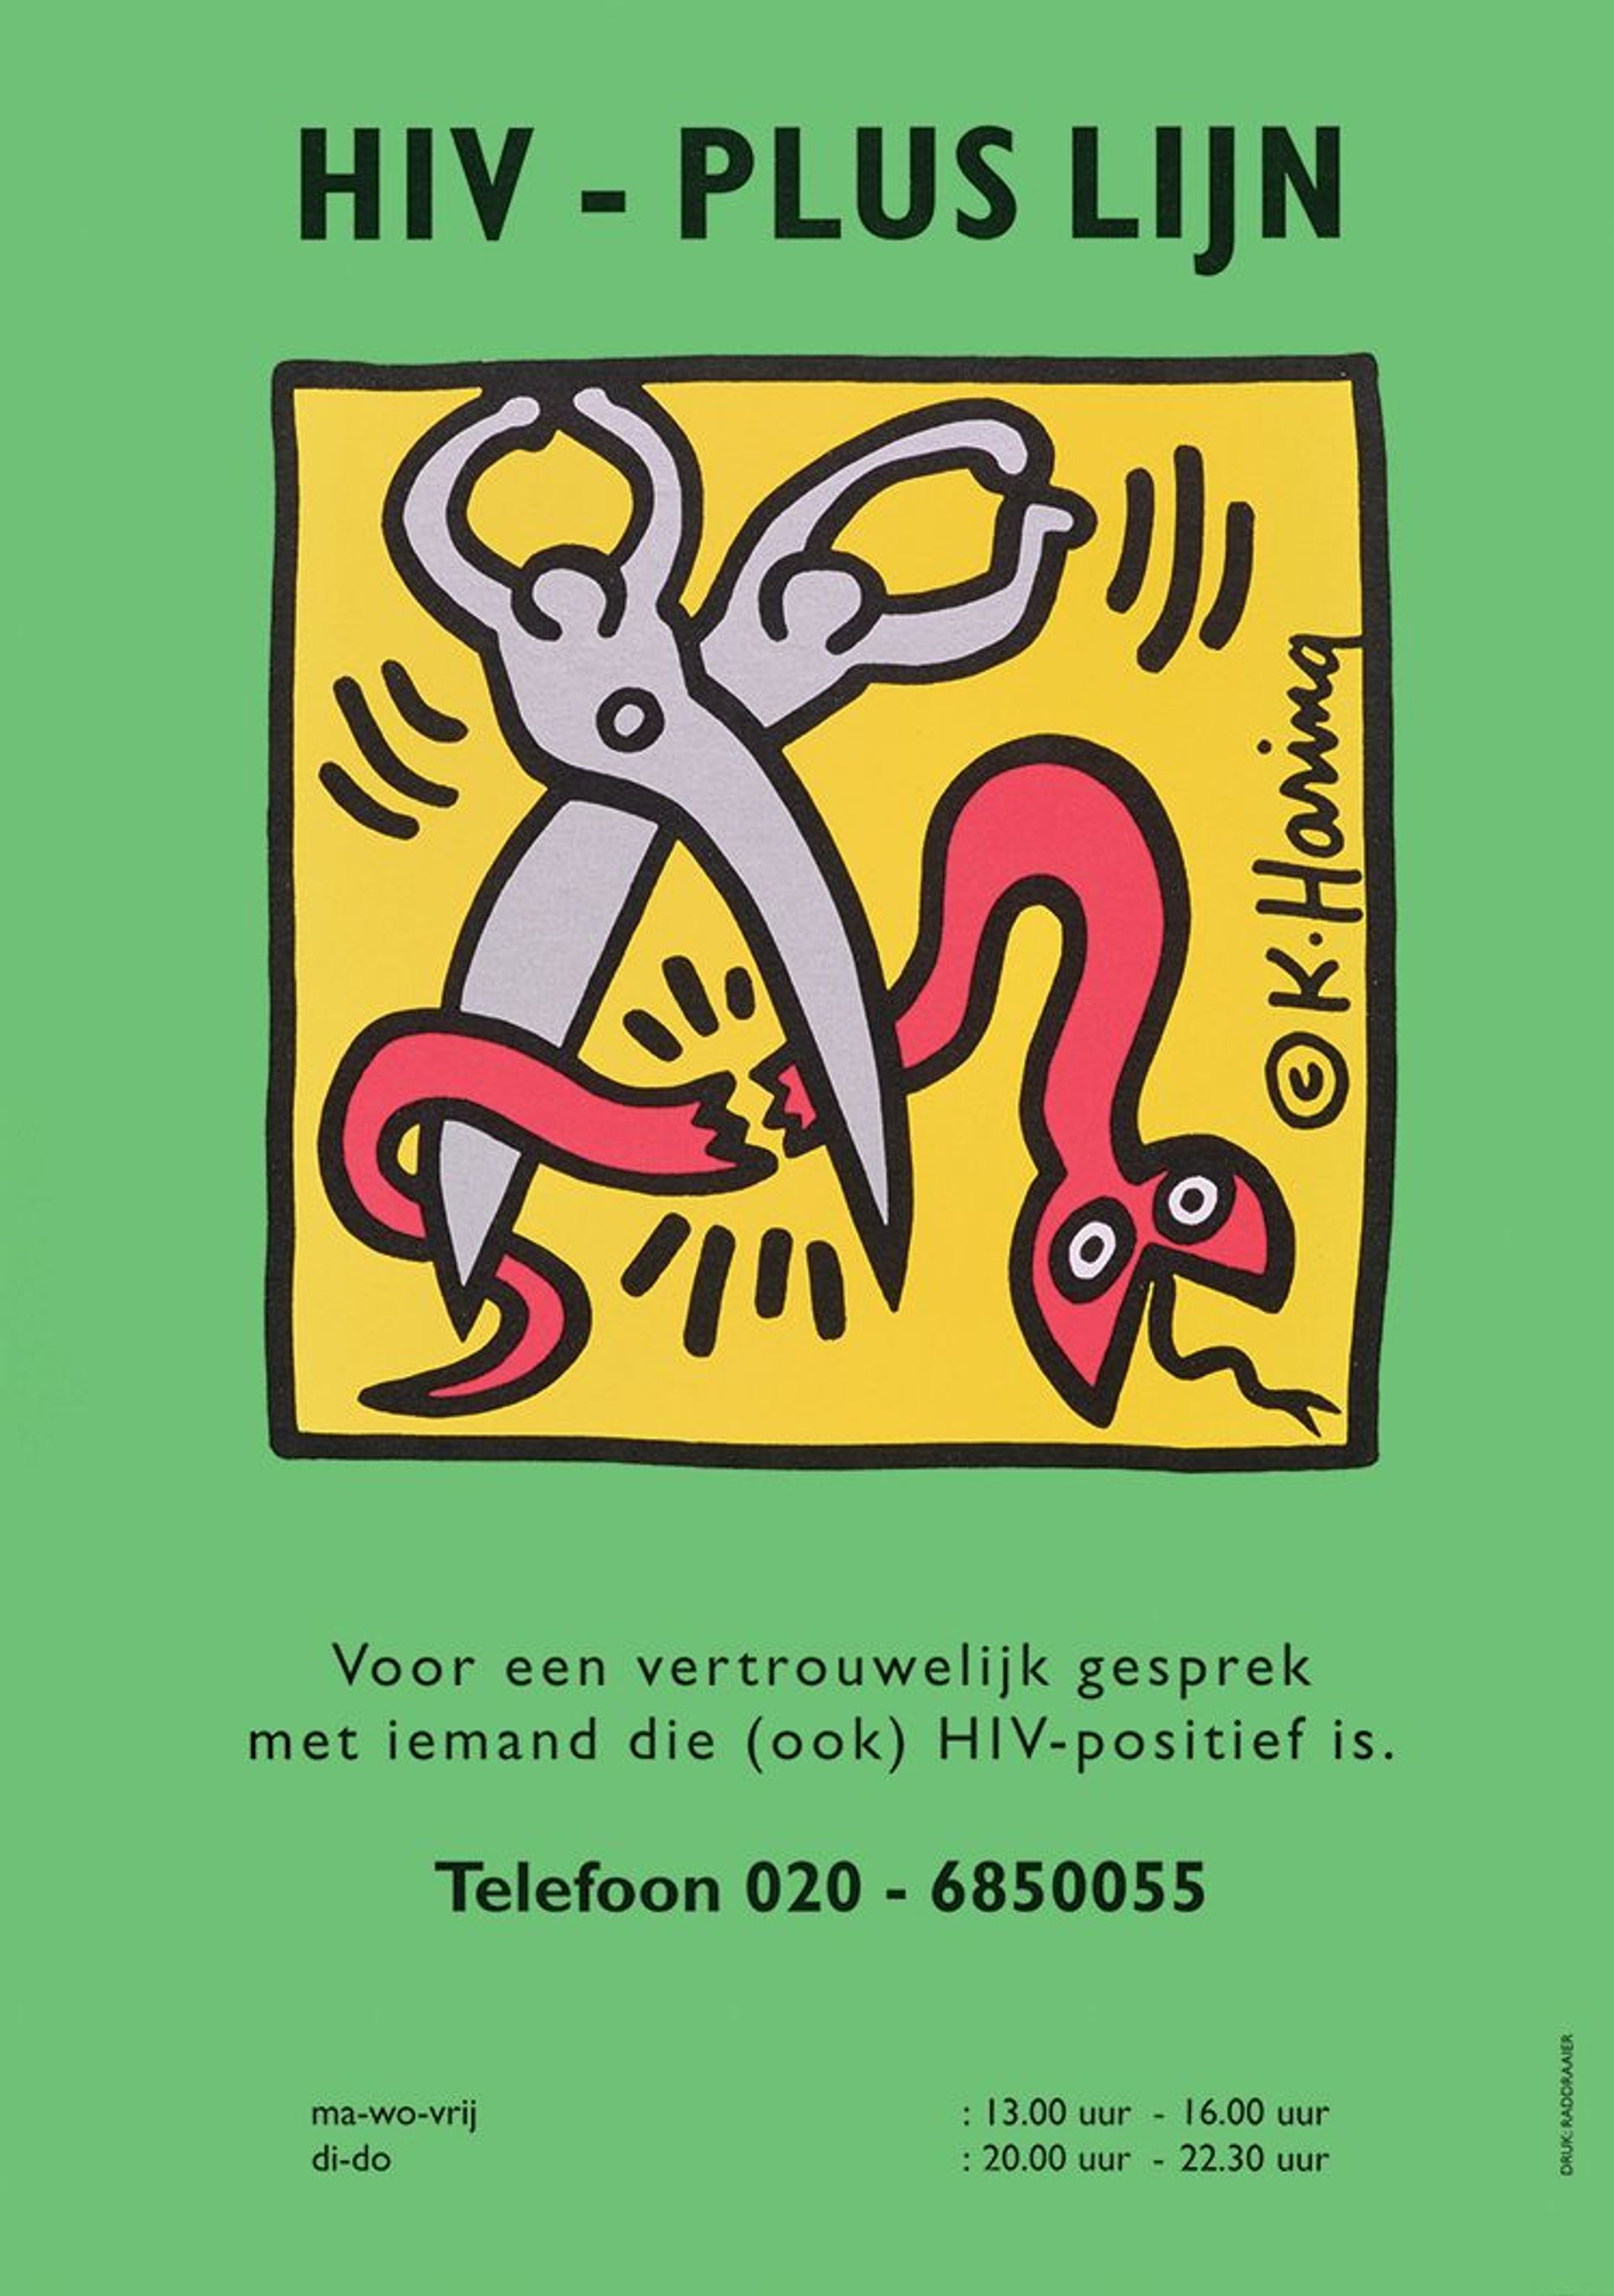 An HIV-Aids education poster, with an image by Keith Haring, appeared in the Netherlands in 1990